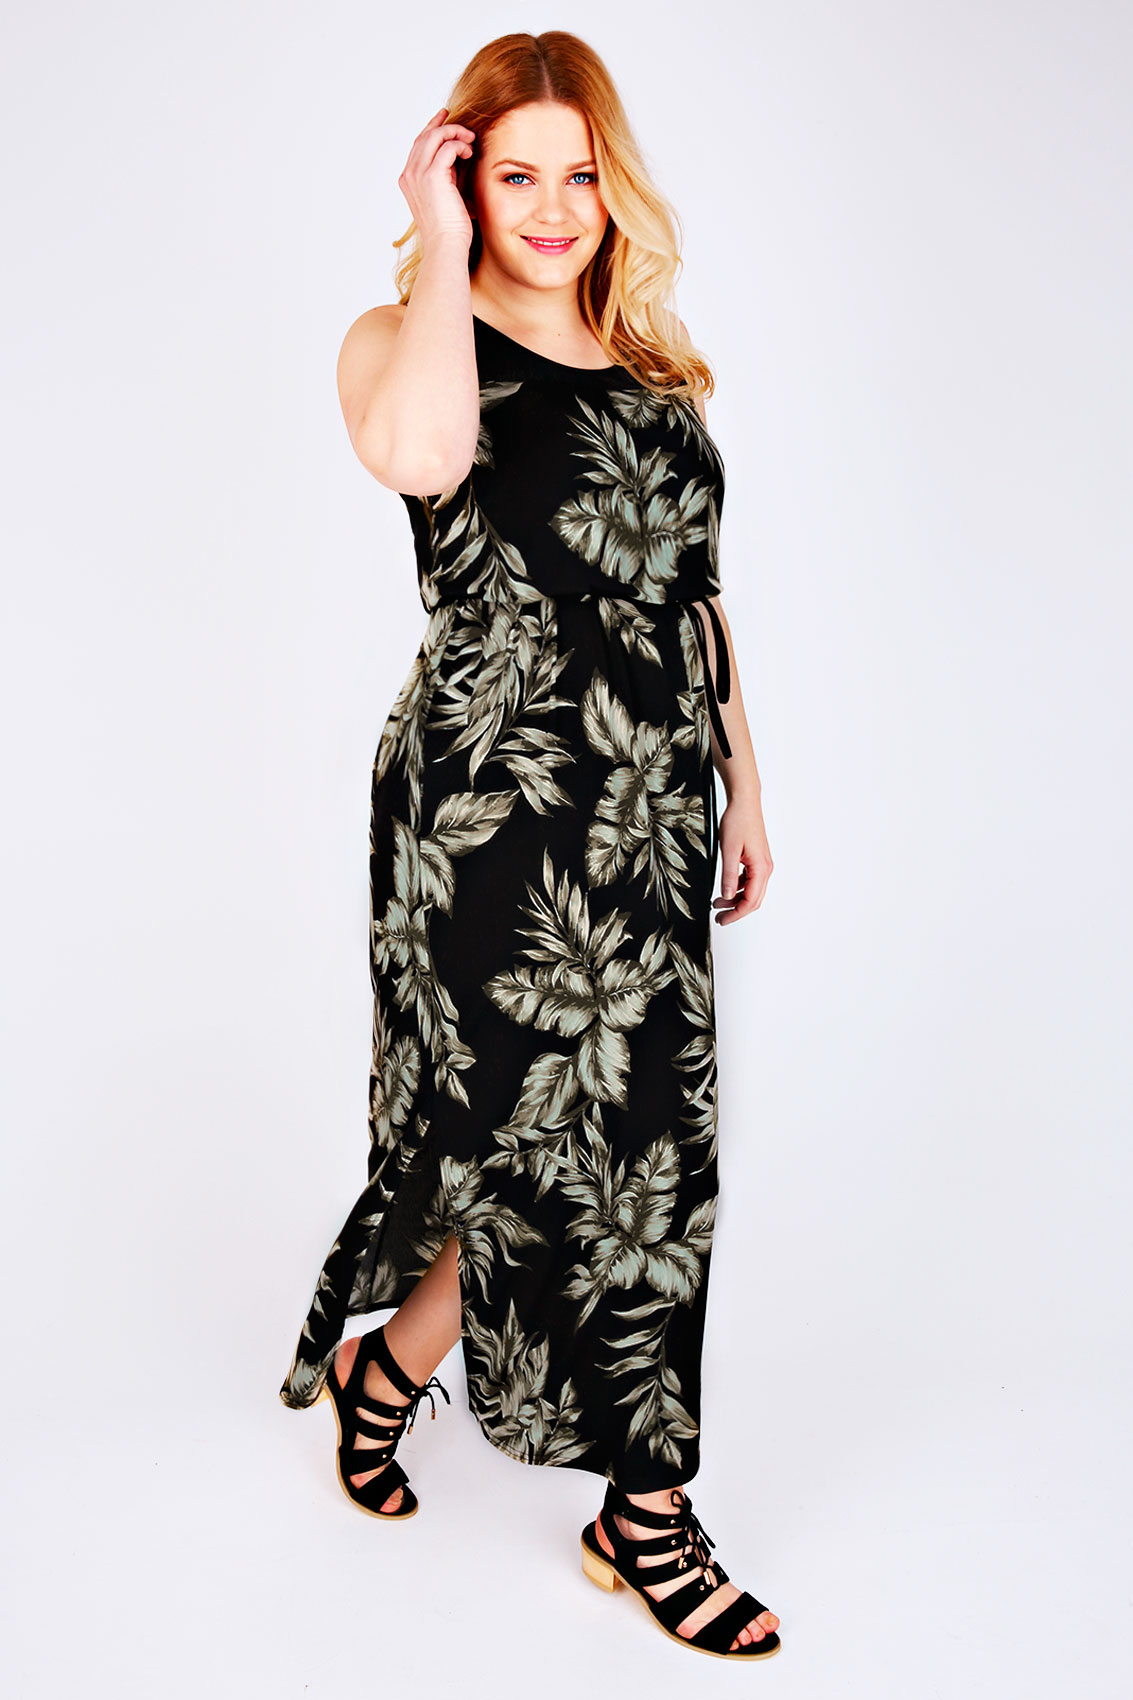 Black and pink floral print maxi dress Save. £ Izabel London Black floral print zip front maxi dress Save. £ HotSquash Black sequined halterneck maxi evening gown Save. Was £ Now £ Stella Nova Black boho print 'Margo' high neck long sleeves maxi dress.